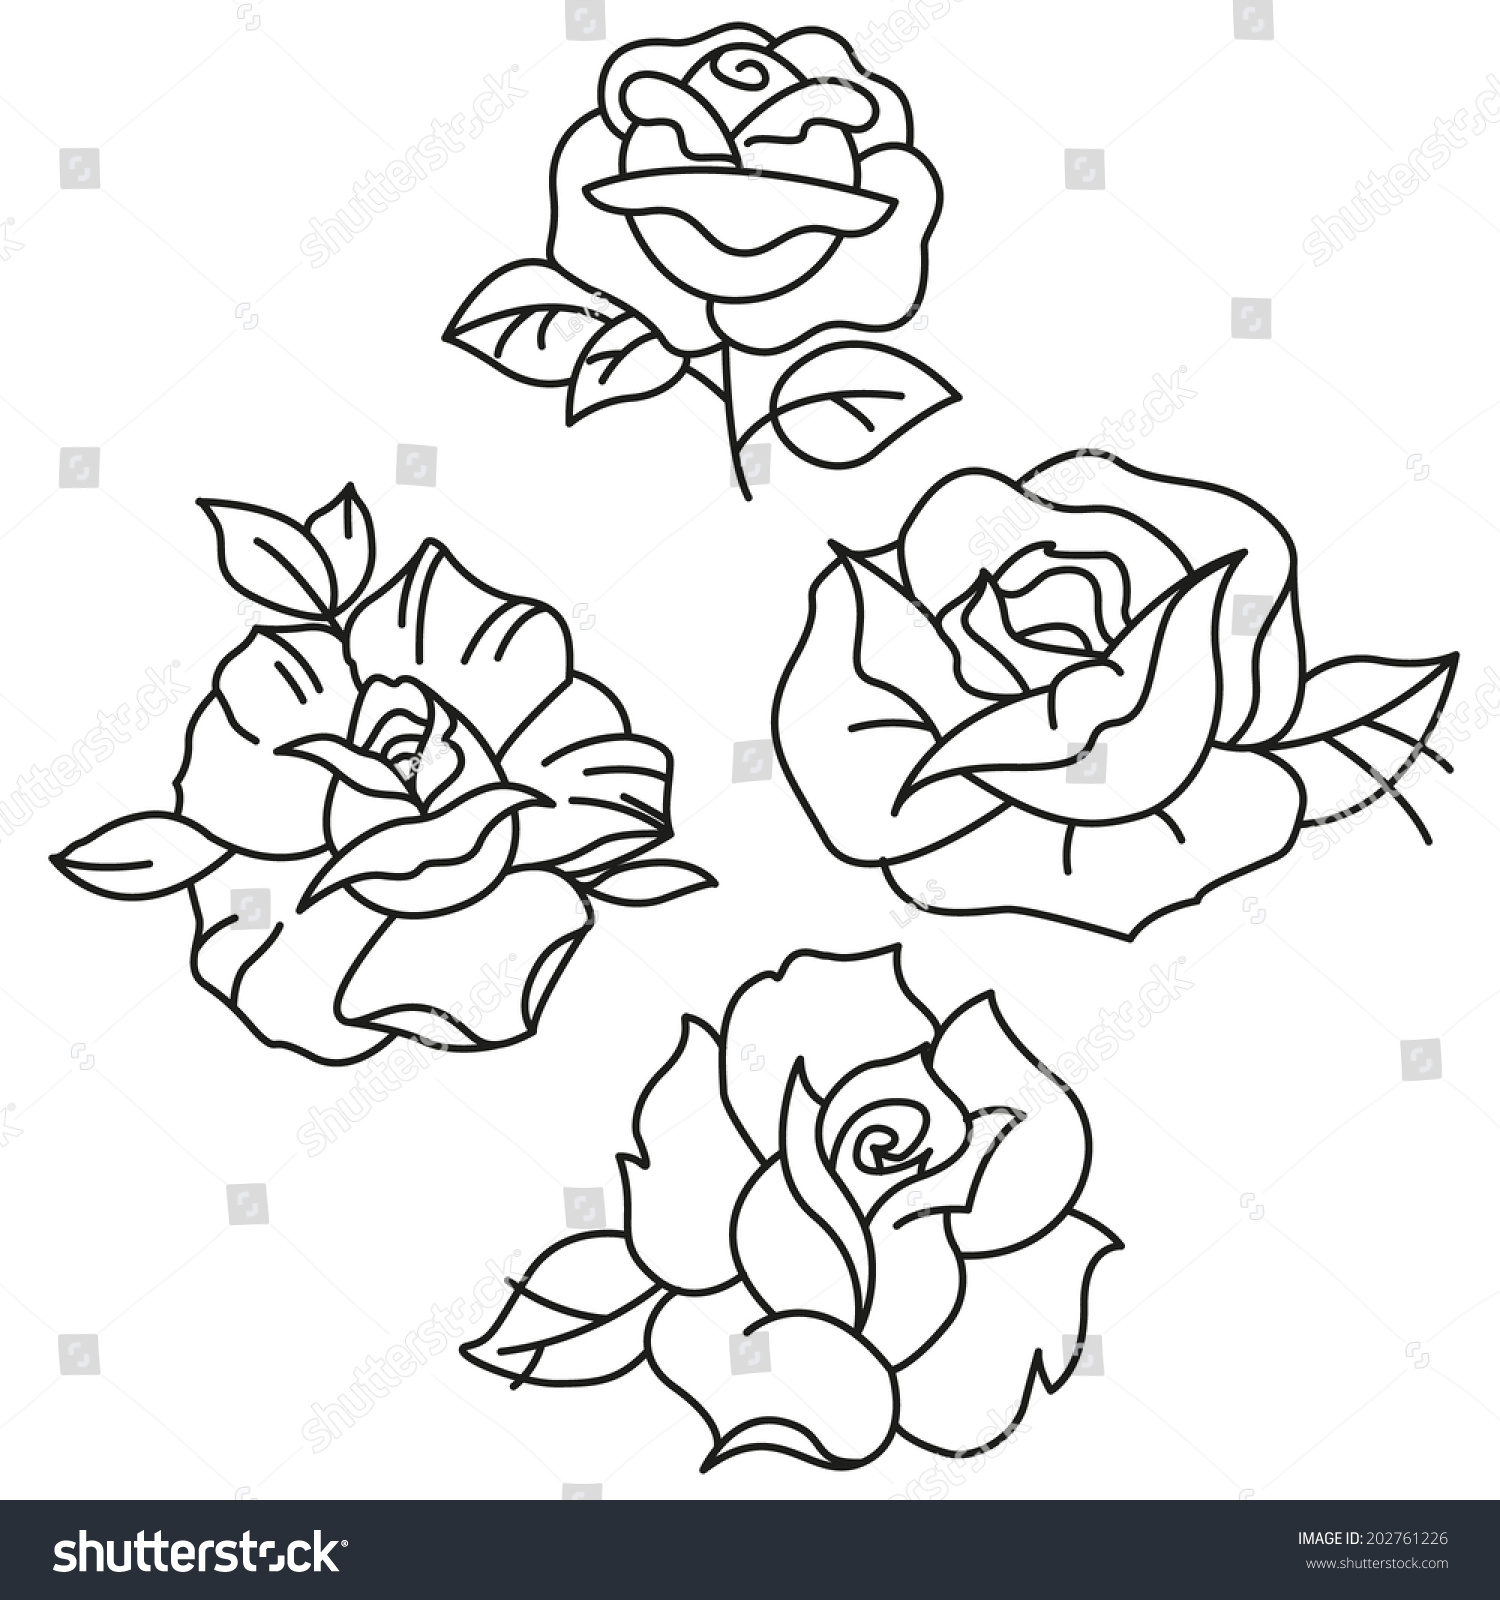 Traditional Tattoo Line Drawing : Traditional tattoo roses stock vector shutterstock